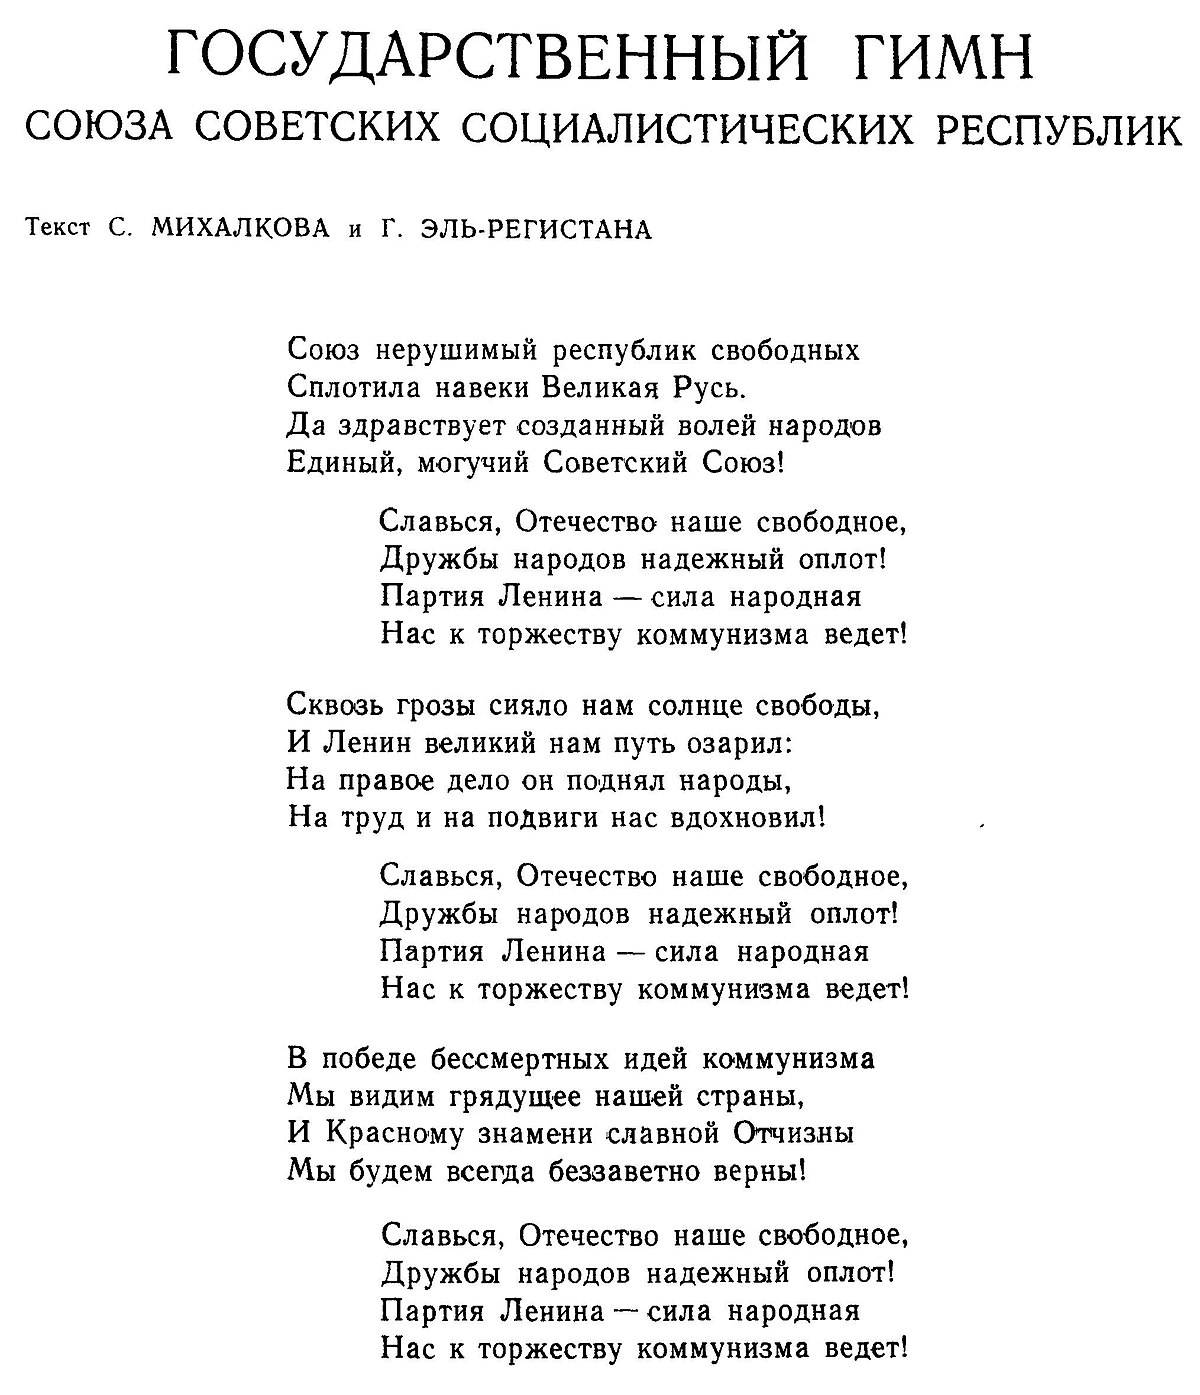 State Anthem Of The Ussr Official Text English Lyrics For Soviet National